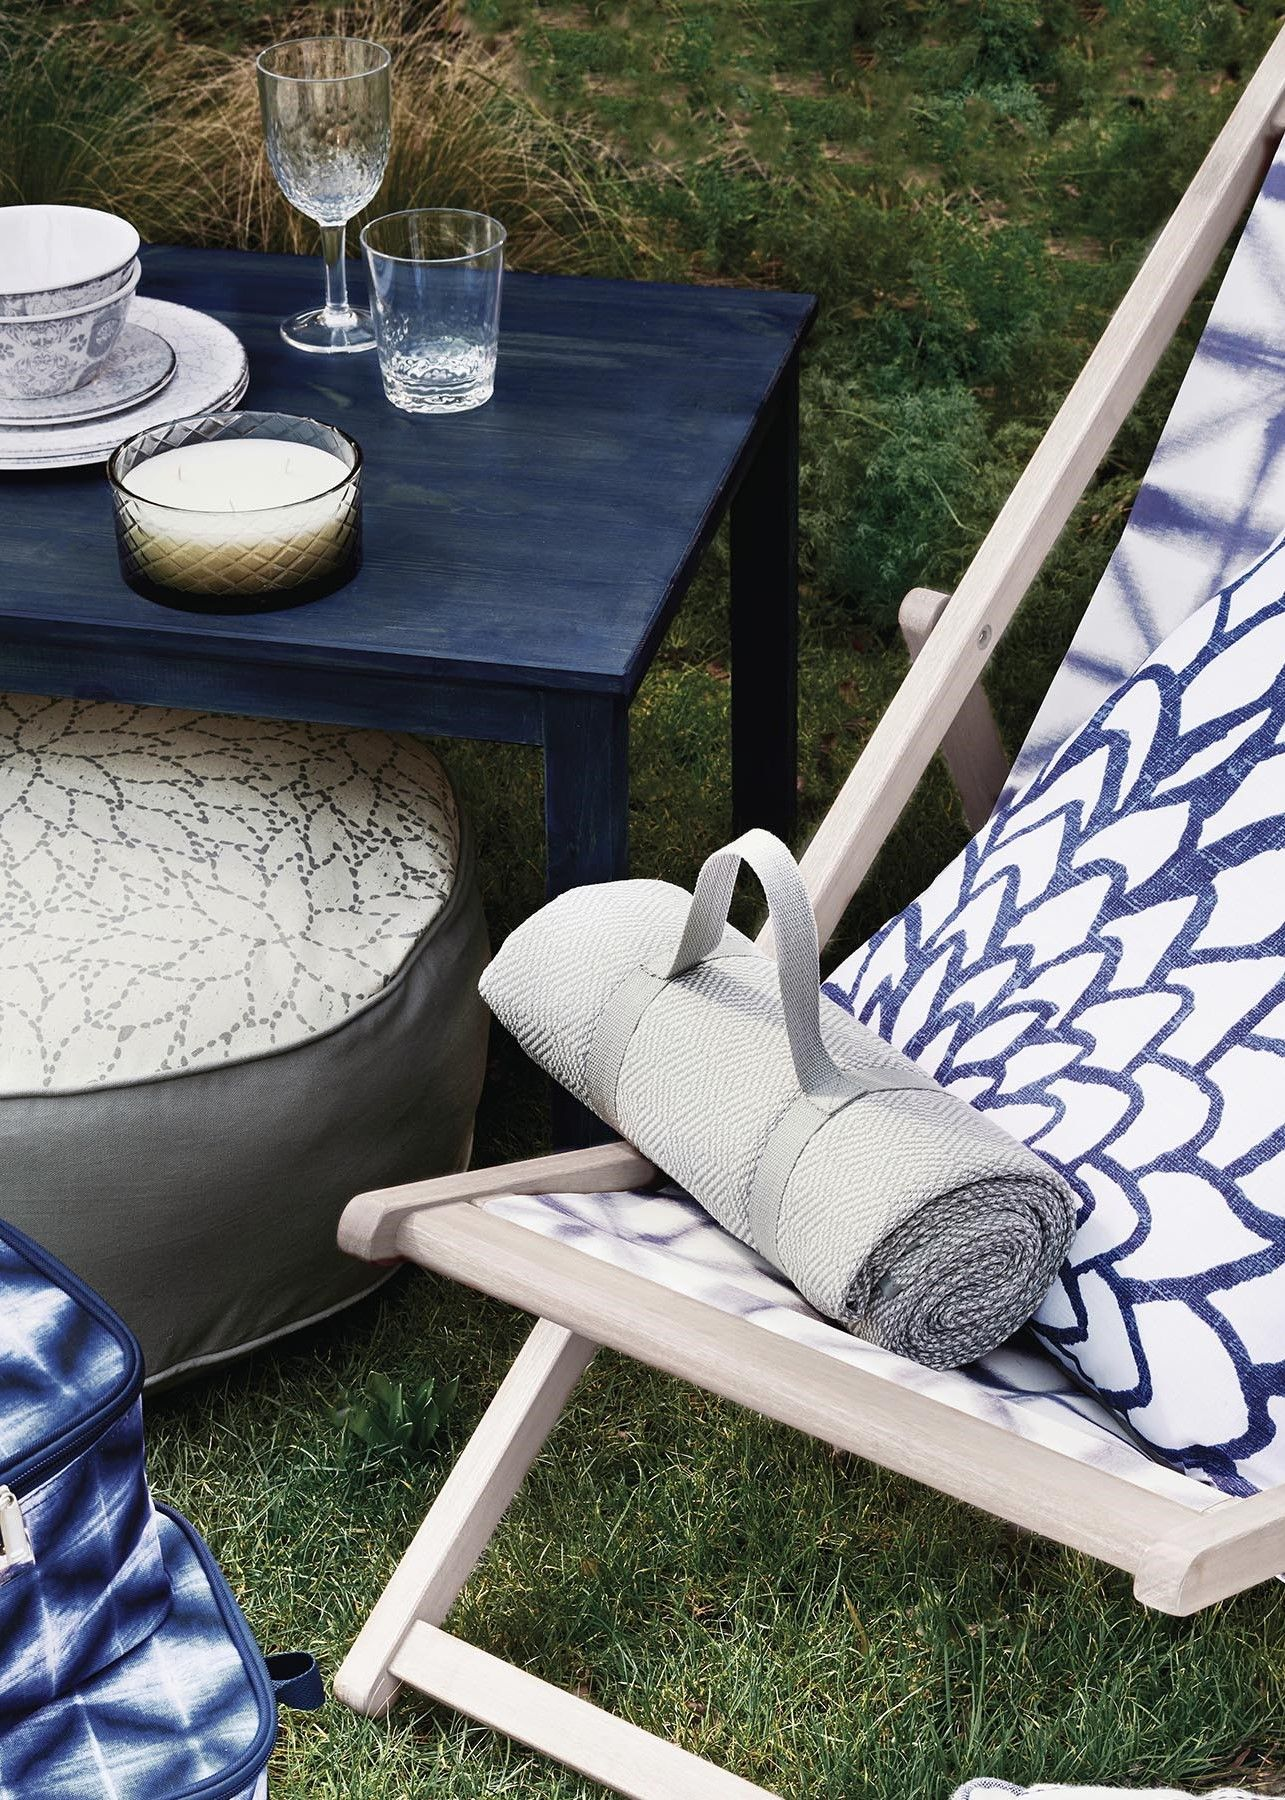 Gardens worth holidaying at home for  Sainsburys home, Outdoor